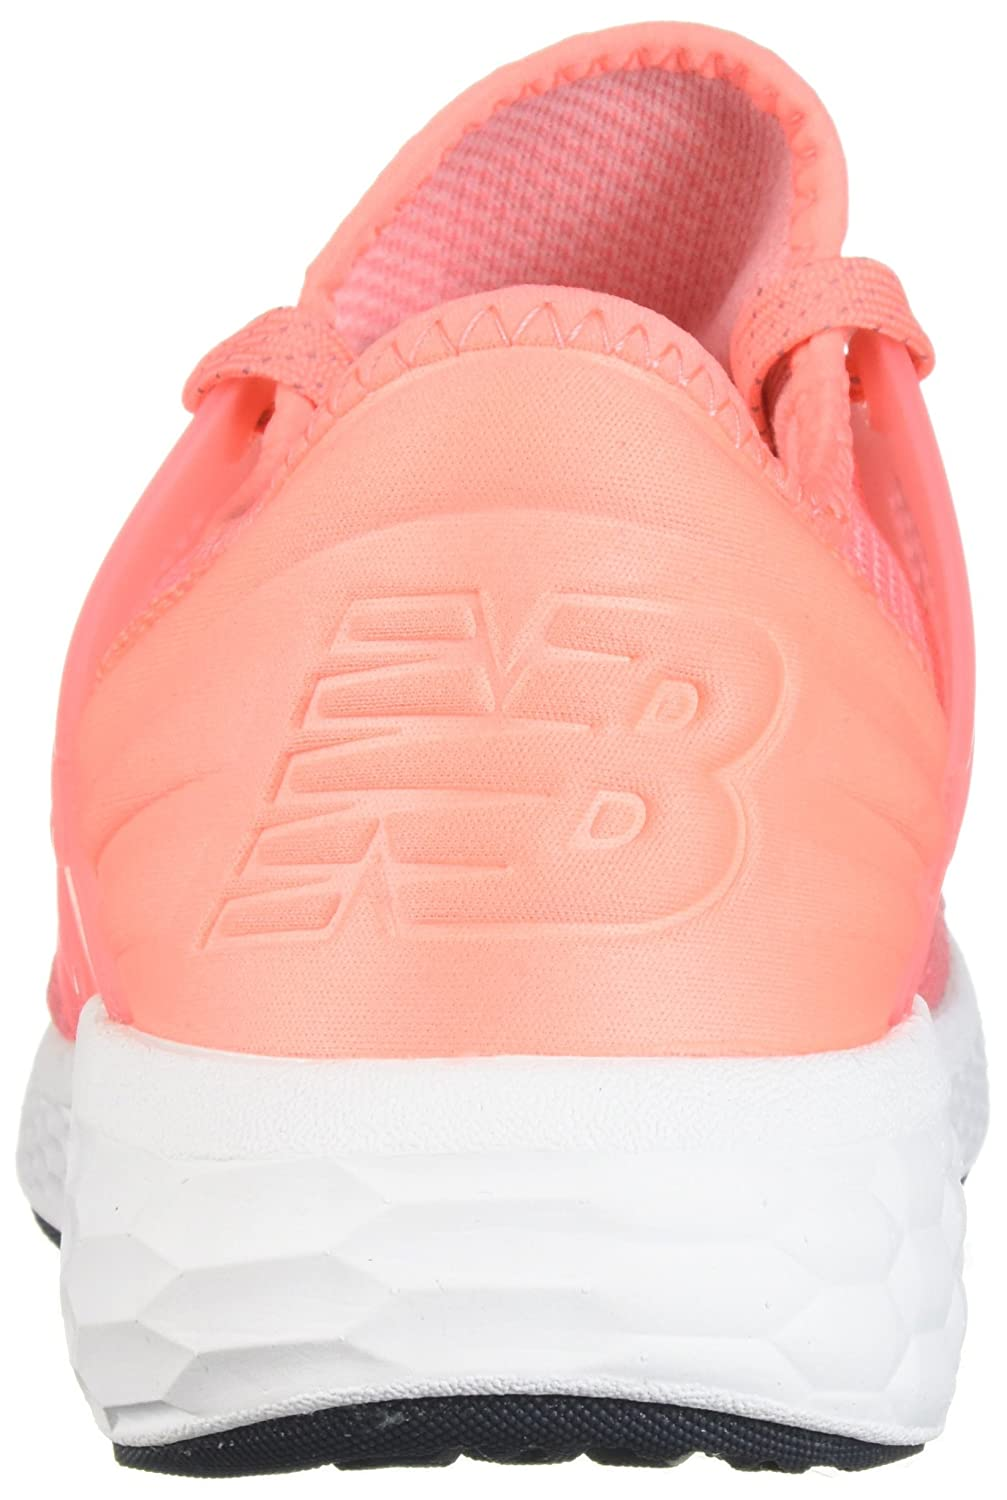 New Balance Women's Cruz V1 Fresh Foam M Running Shoe B0751Q7NG2 5 M Foam US|Fiji cac5ab